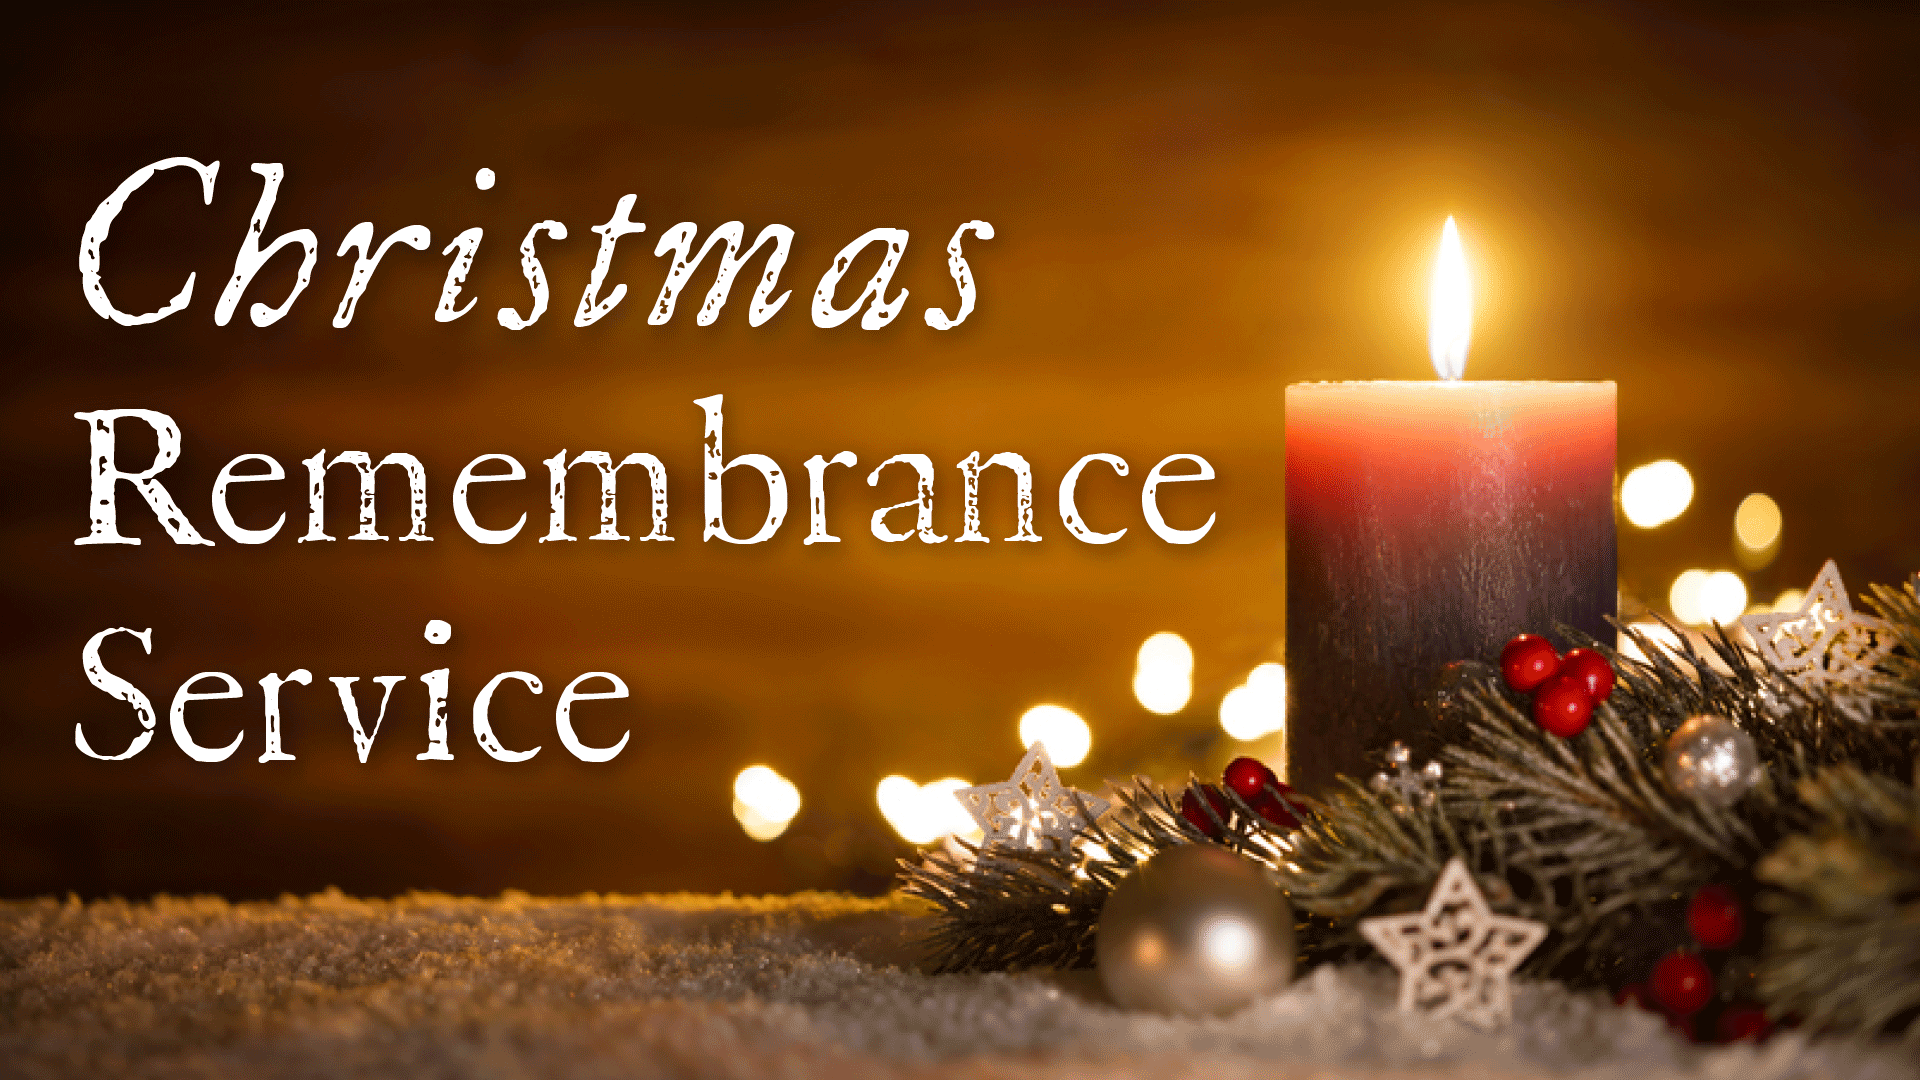 Xmas Remembrance Service Fbook Cover